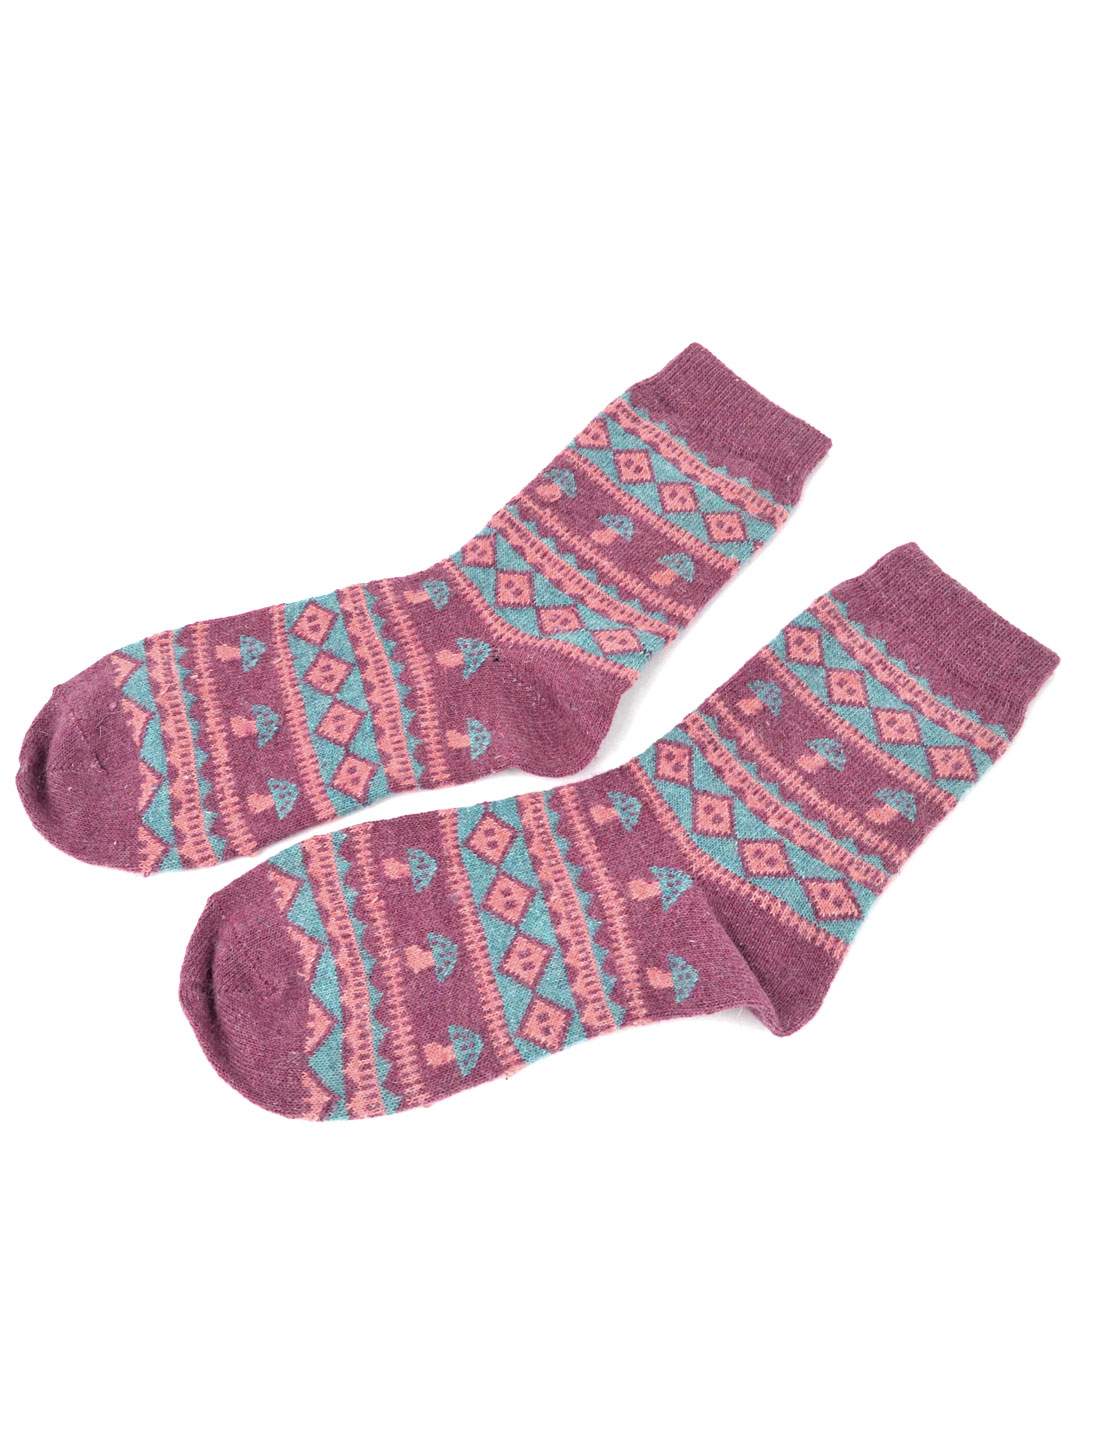 Woman Elastic Cuff Mushroom Pattern Wool Ankle Socks Hosiery Blue Purple Pair